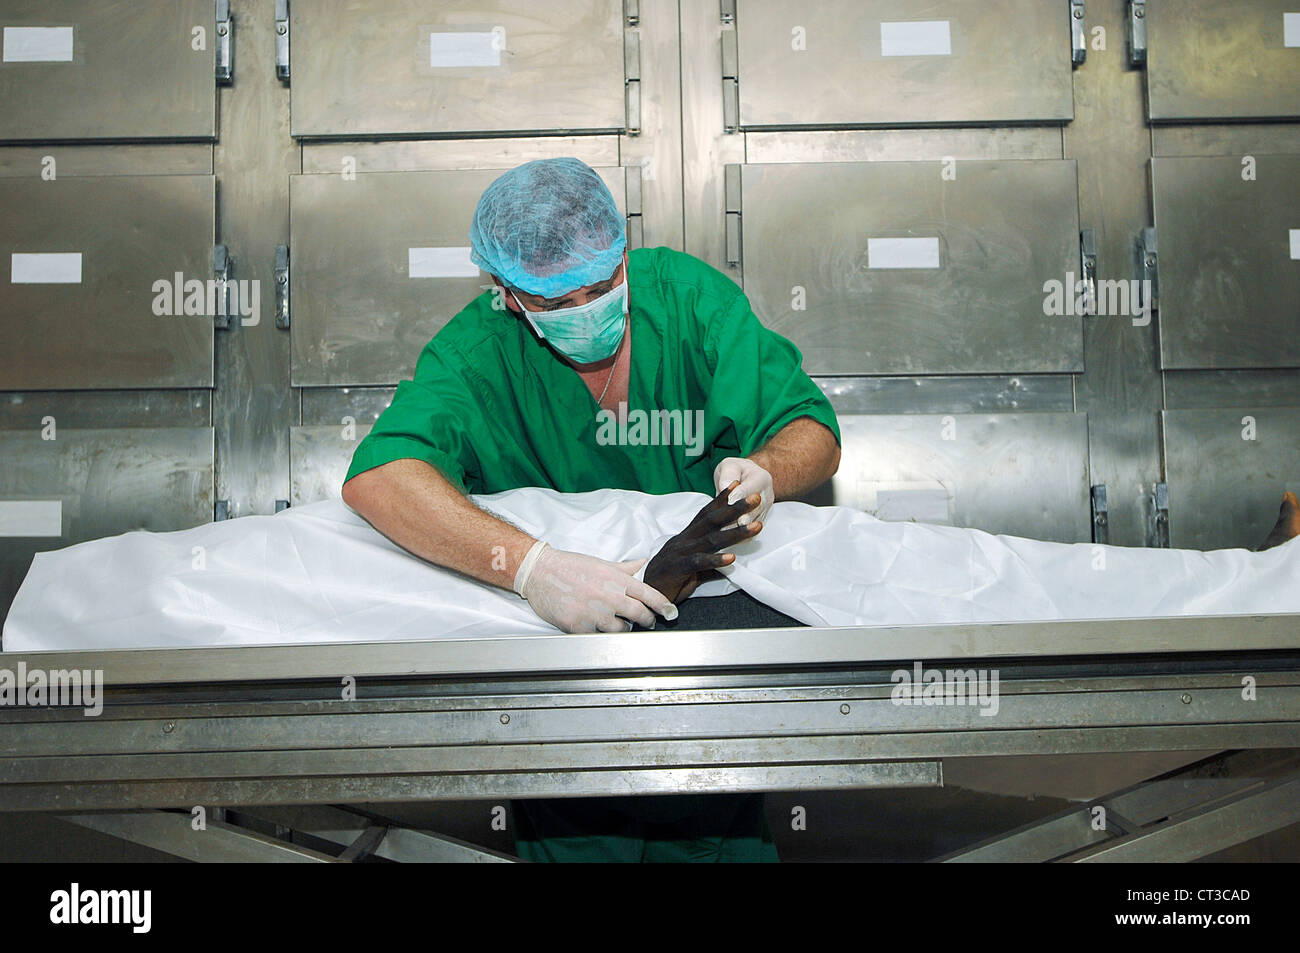 A forensic pathologist inspects the hands and fingers of a corpse. - Stock Image